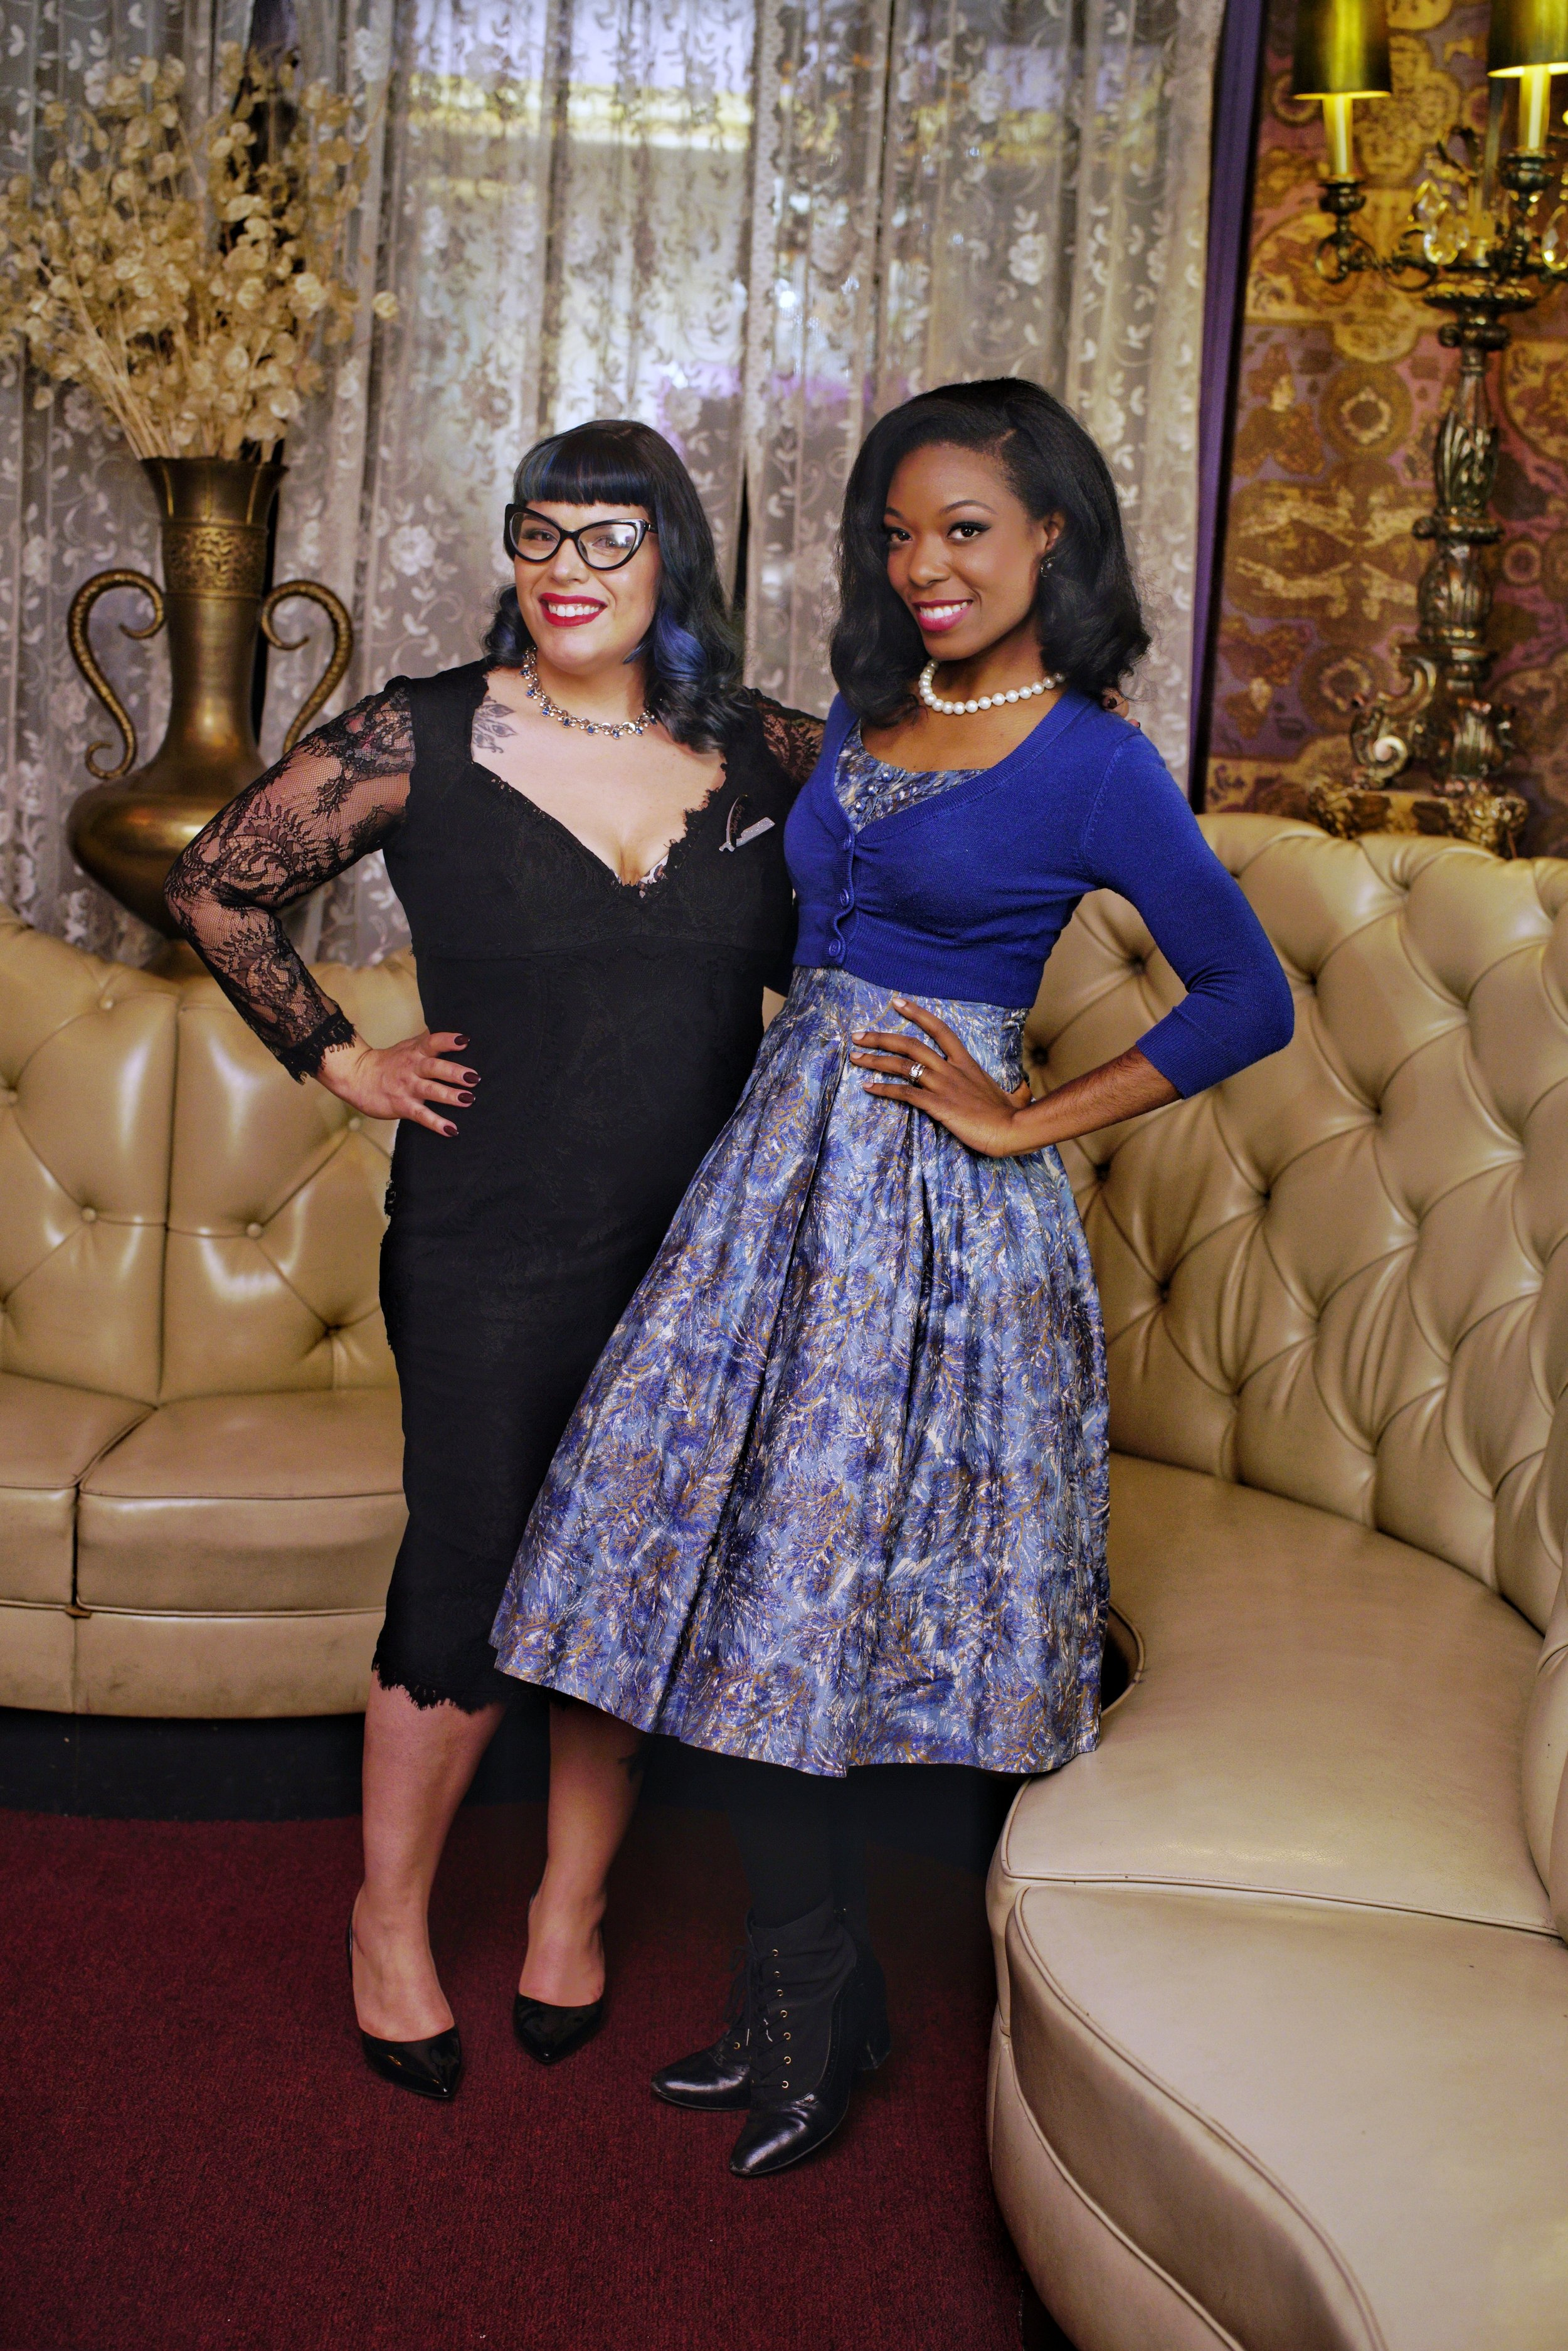 Me and Lissete at the meetup at Hob Nob with The Milwaukee Vintage Style Society